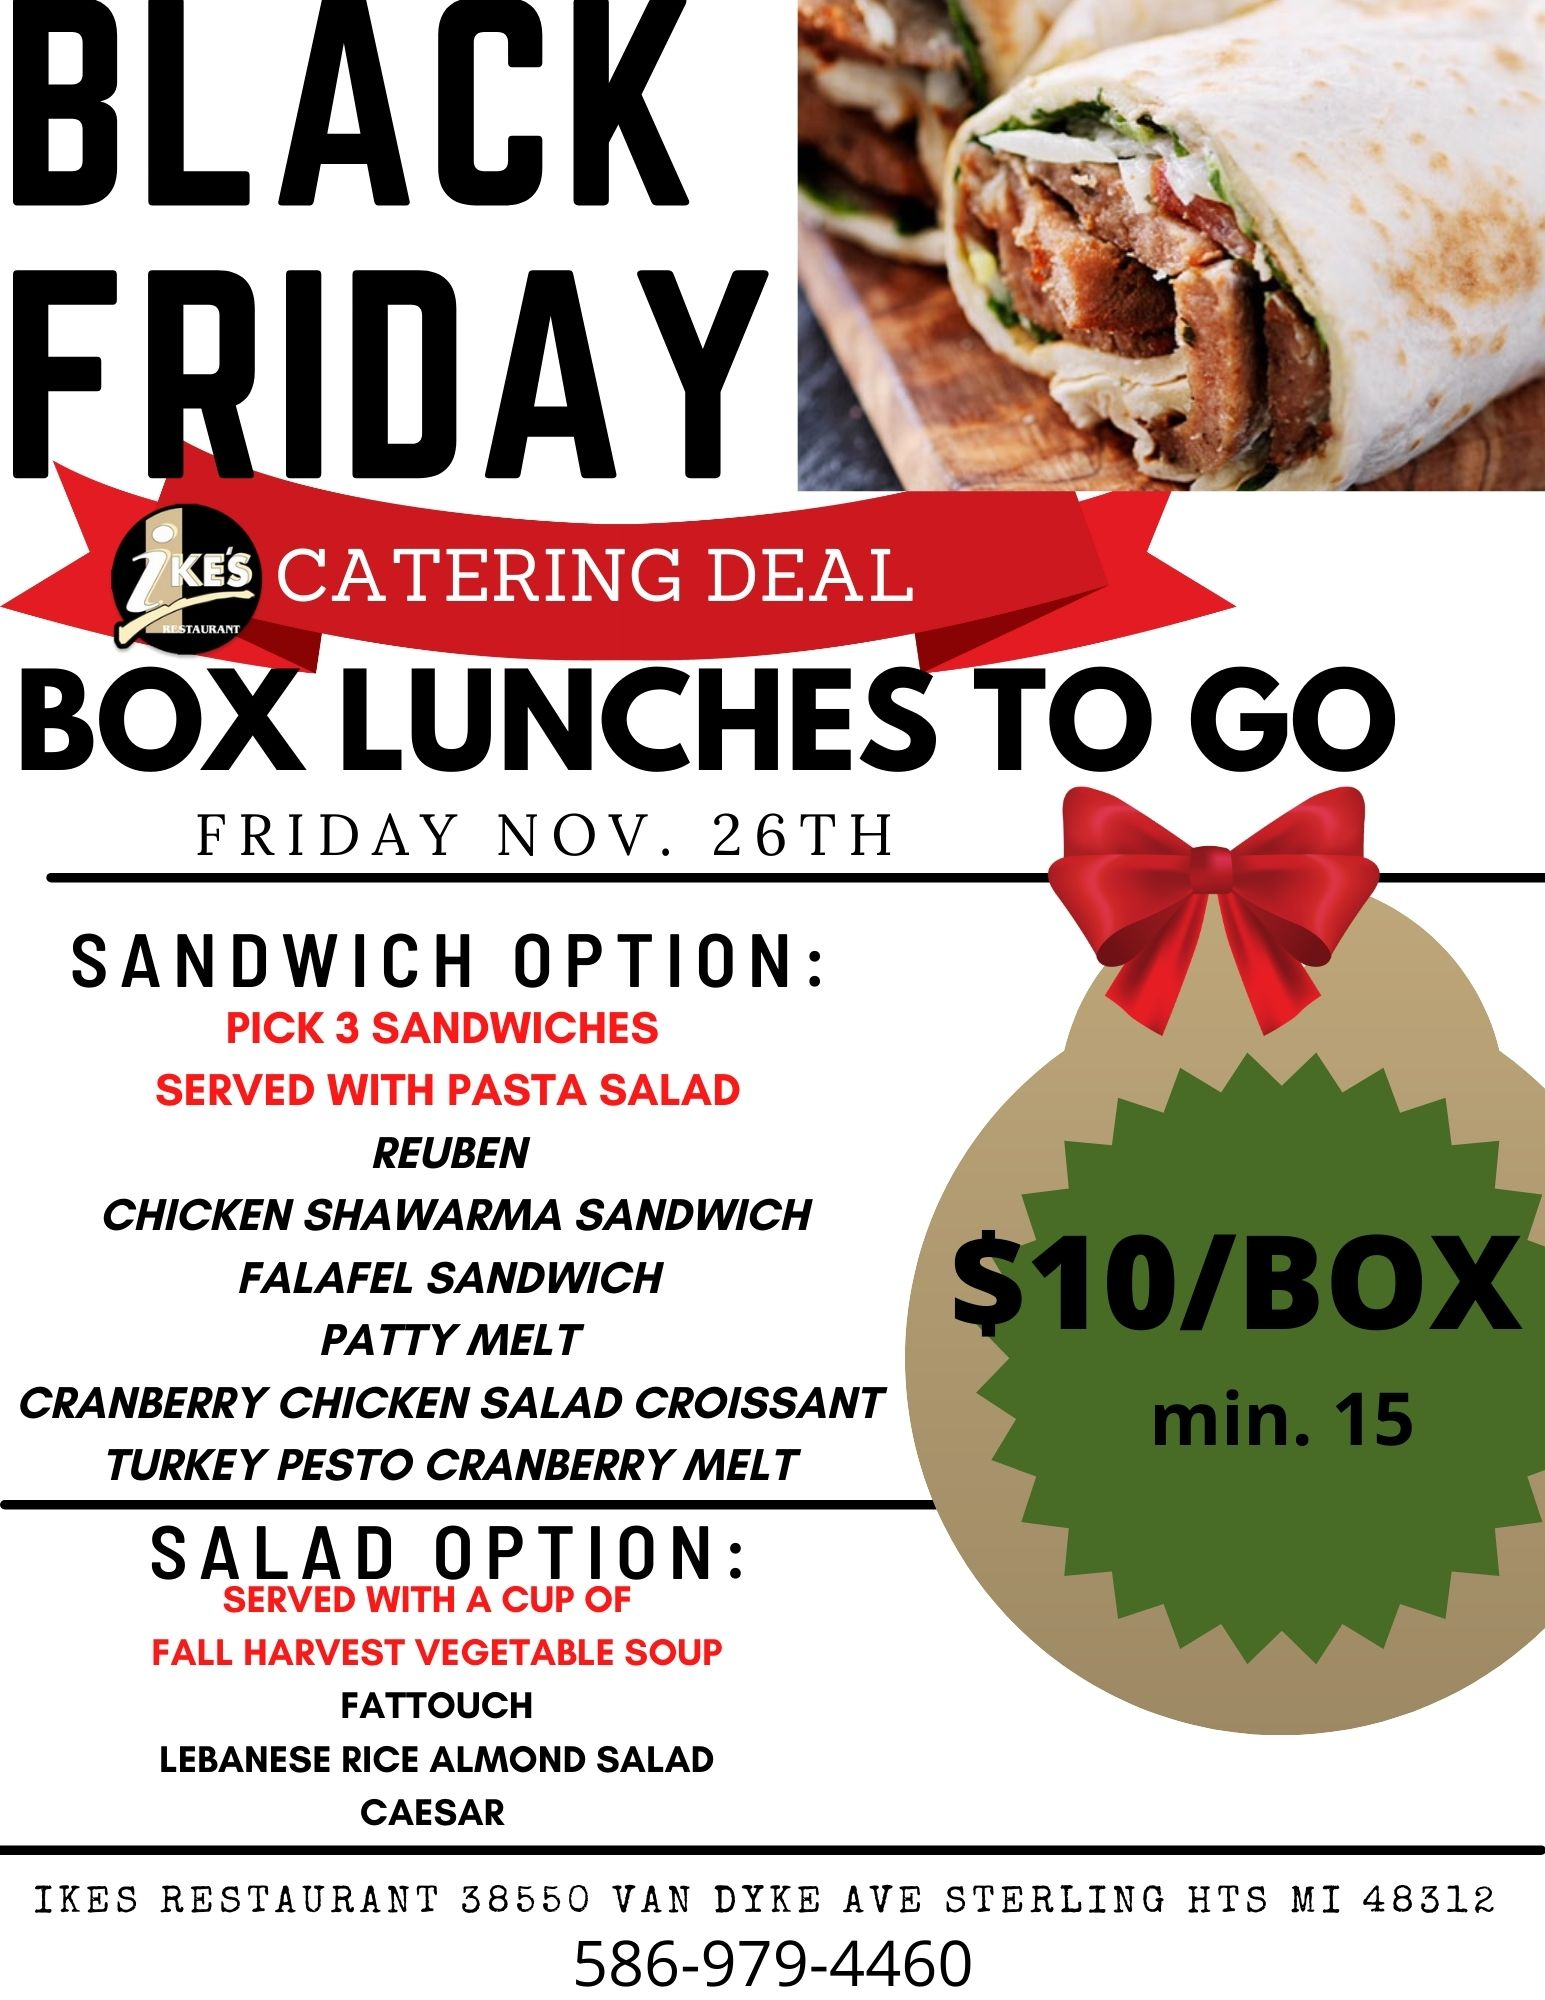 BLACK FRIDAY BOX LUNCHES